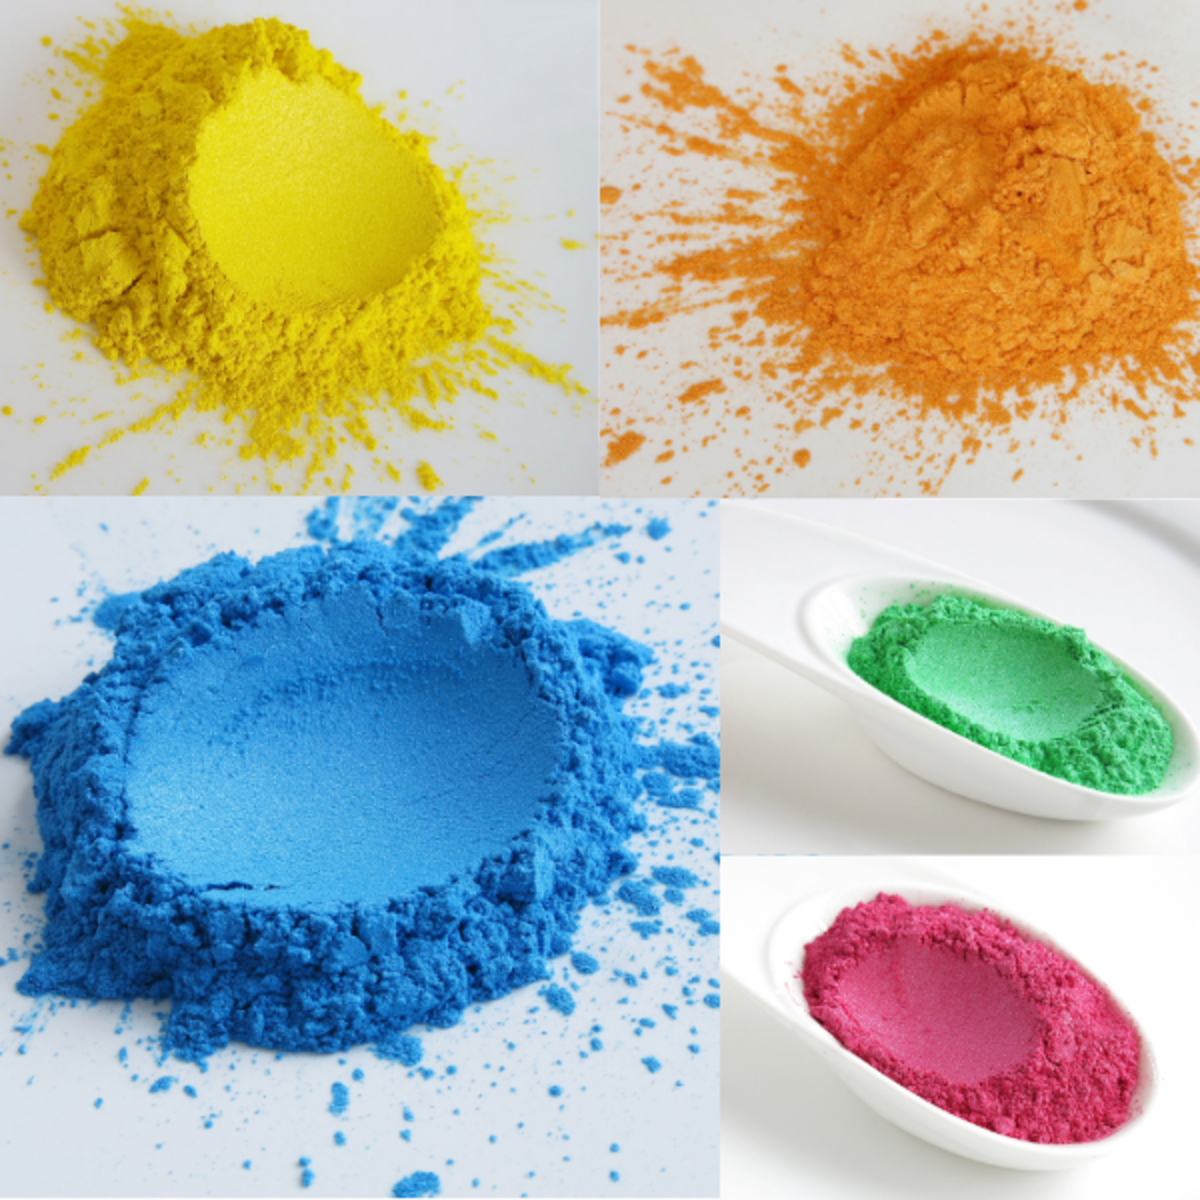 Mica powder comes in a variety of colors.